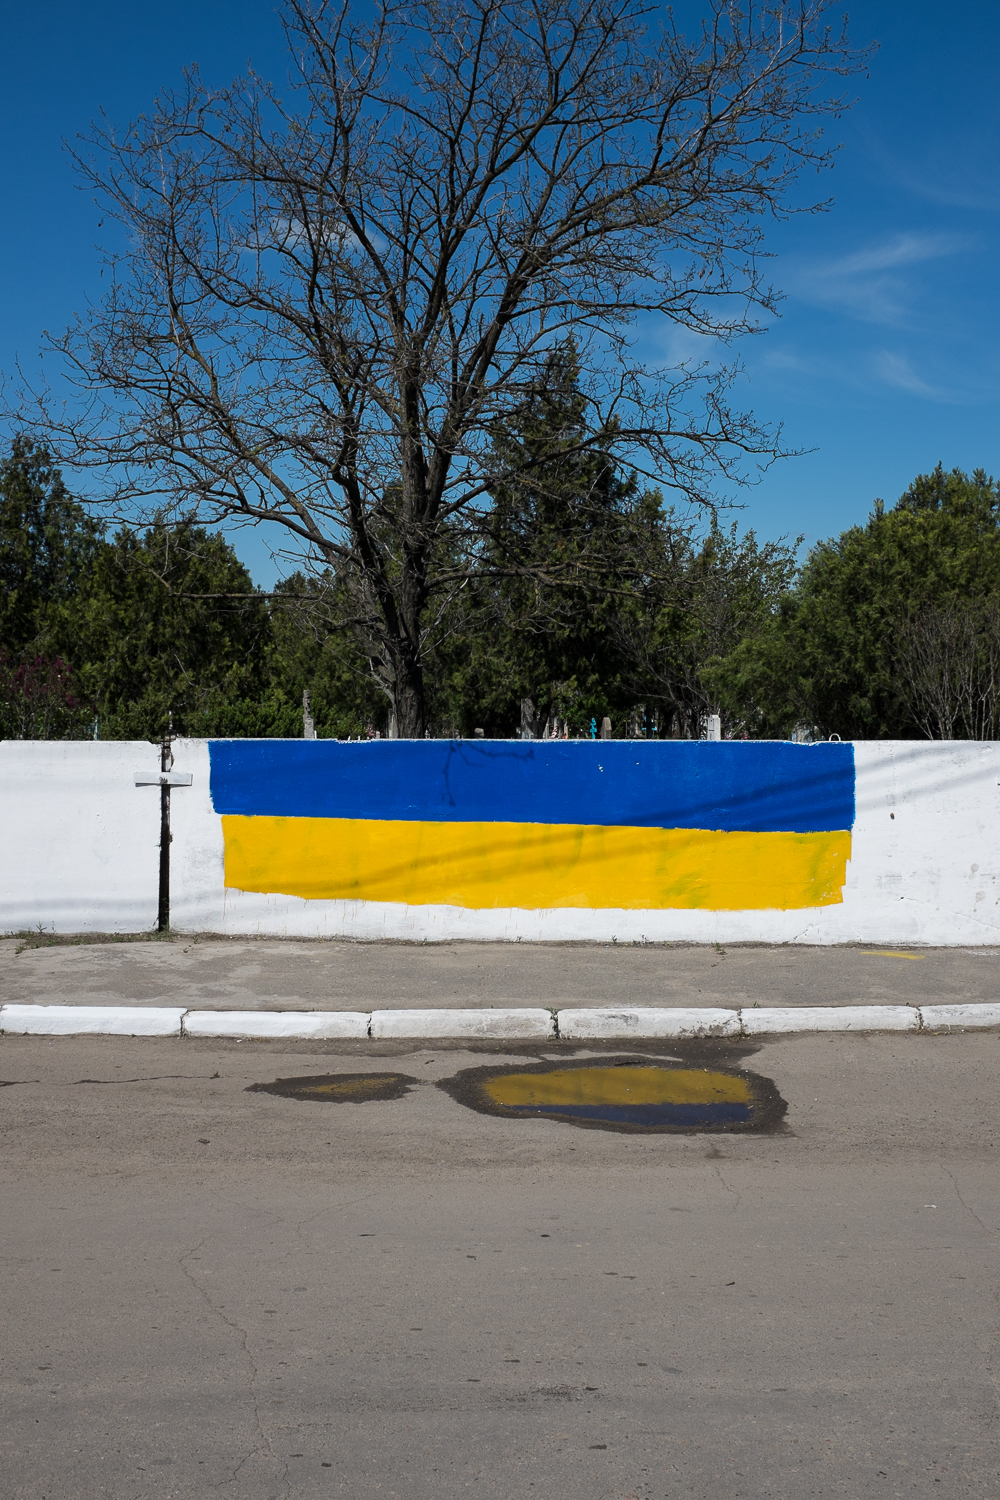 The Ukrainian flag painted on a wall in the city of Izmail, southern Ukraine.